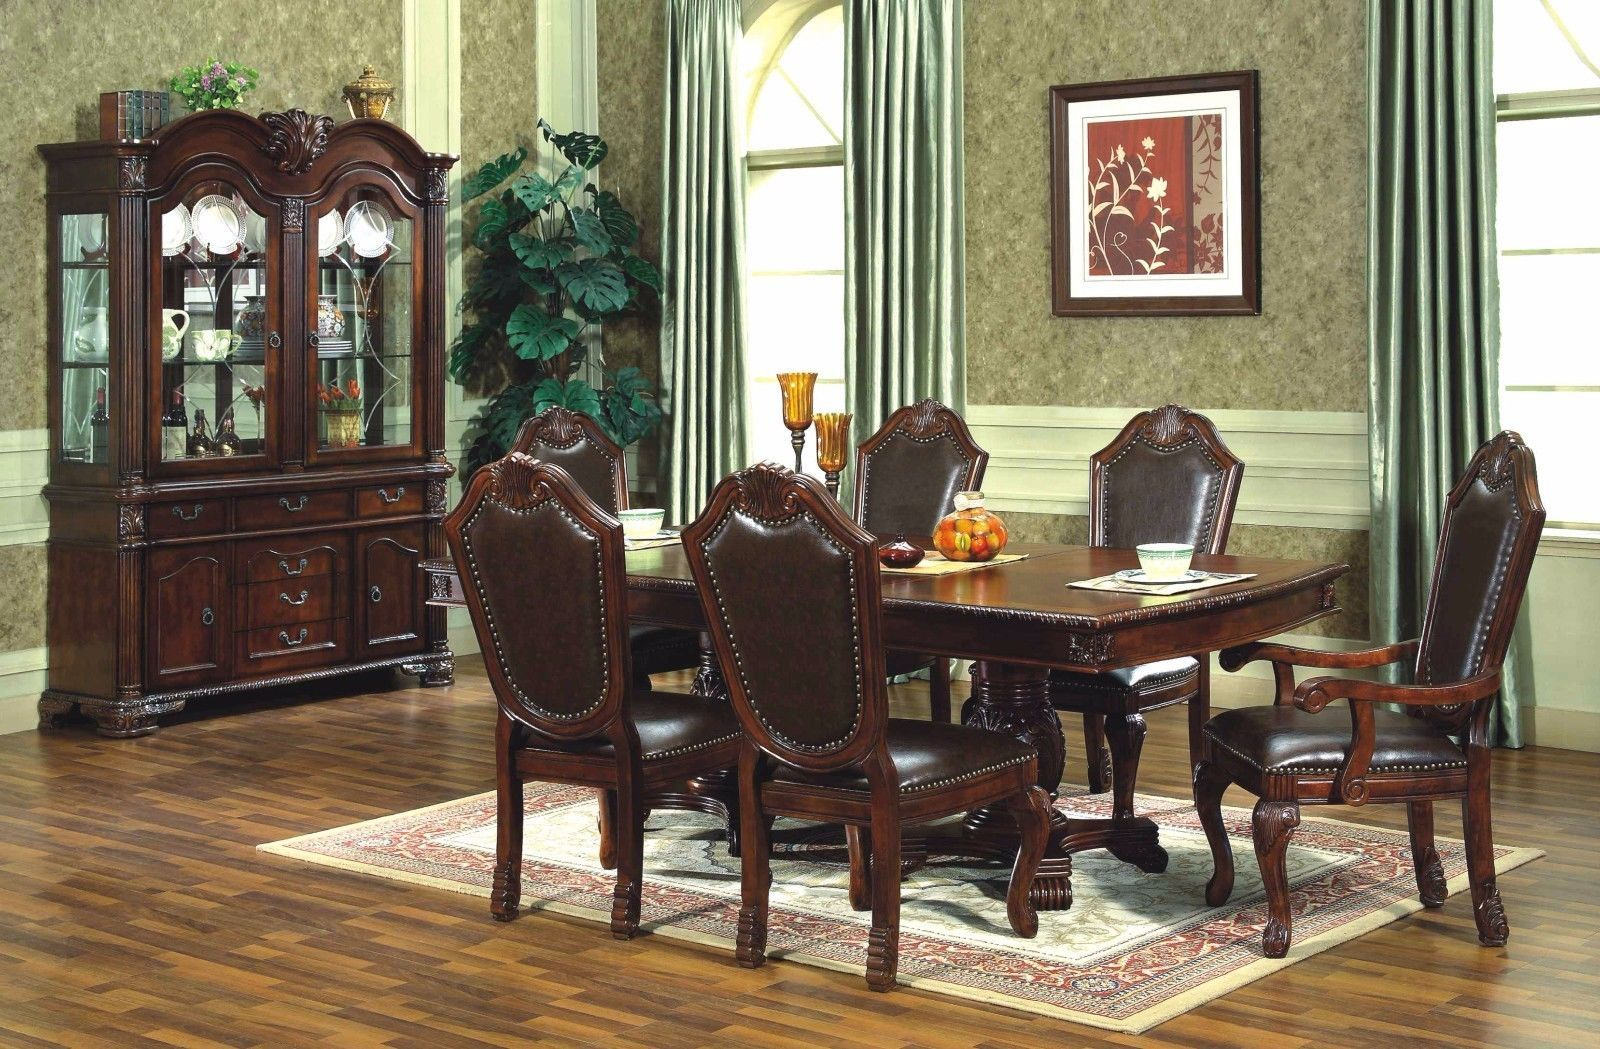 Mcferran RD5004 Dining Room Set 5pc. Cherry Furnishings Traditional Style